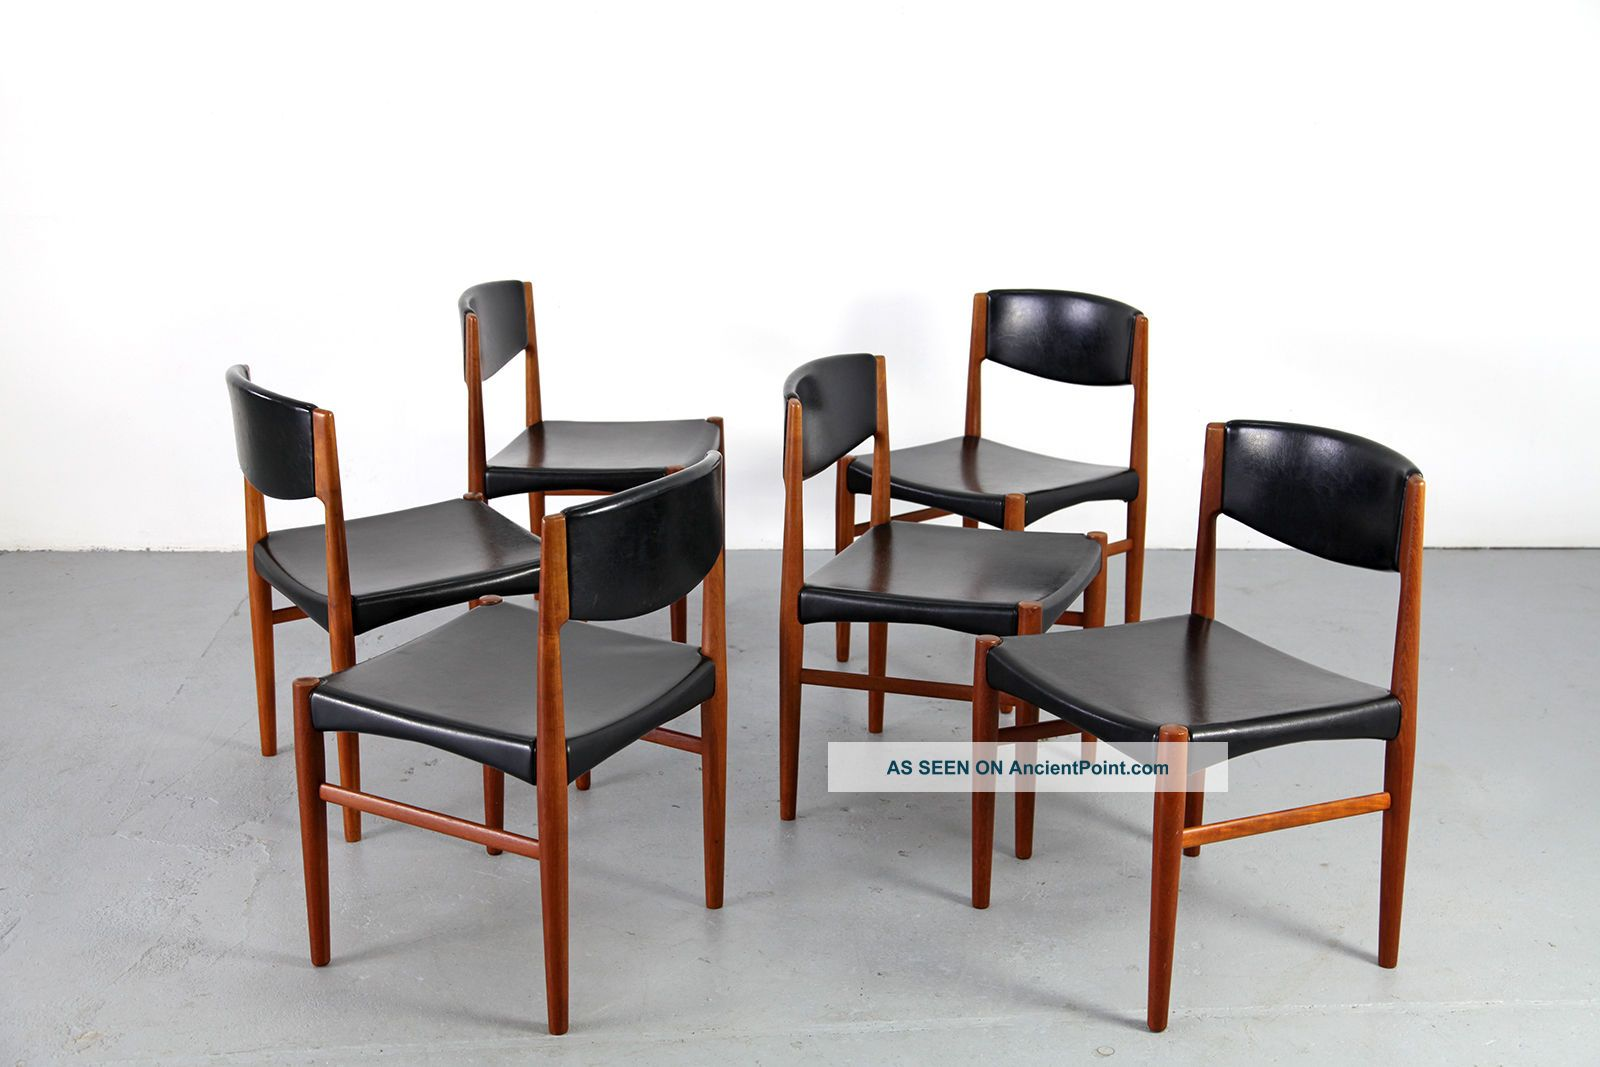 6 mid century dining chairs by glostrup denmark 60s danish m